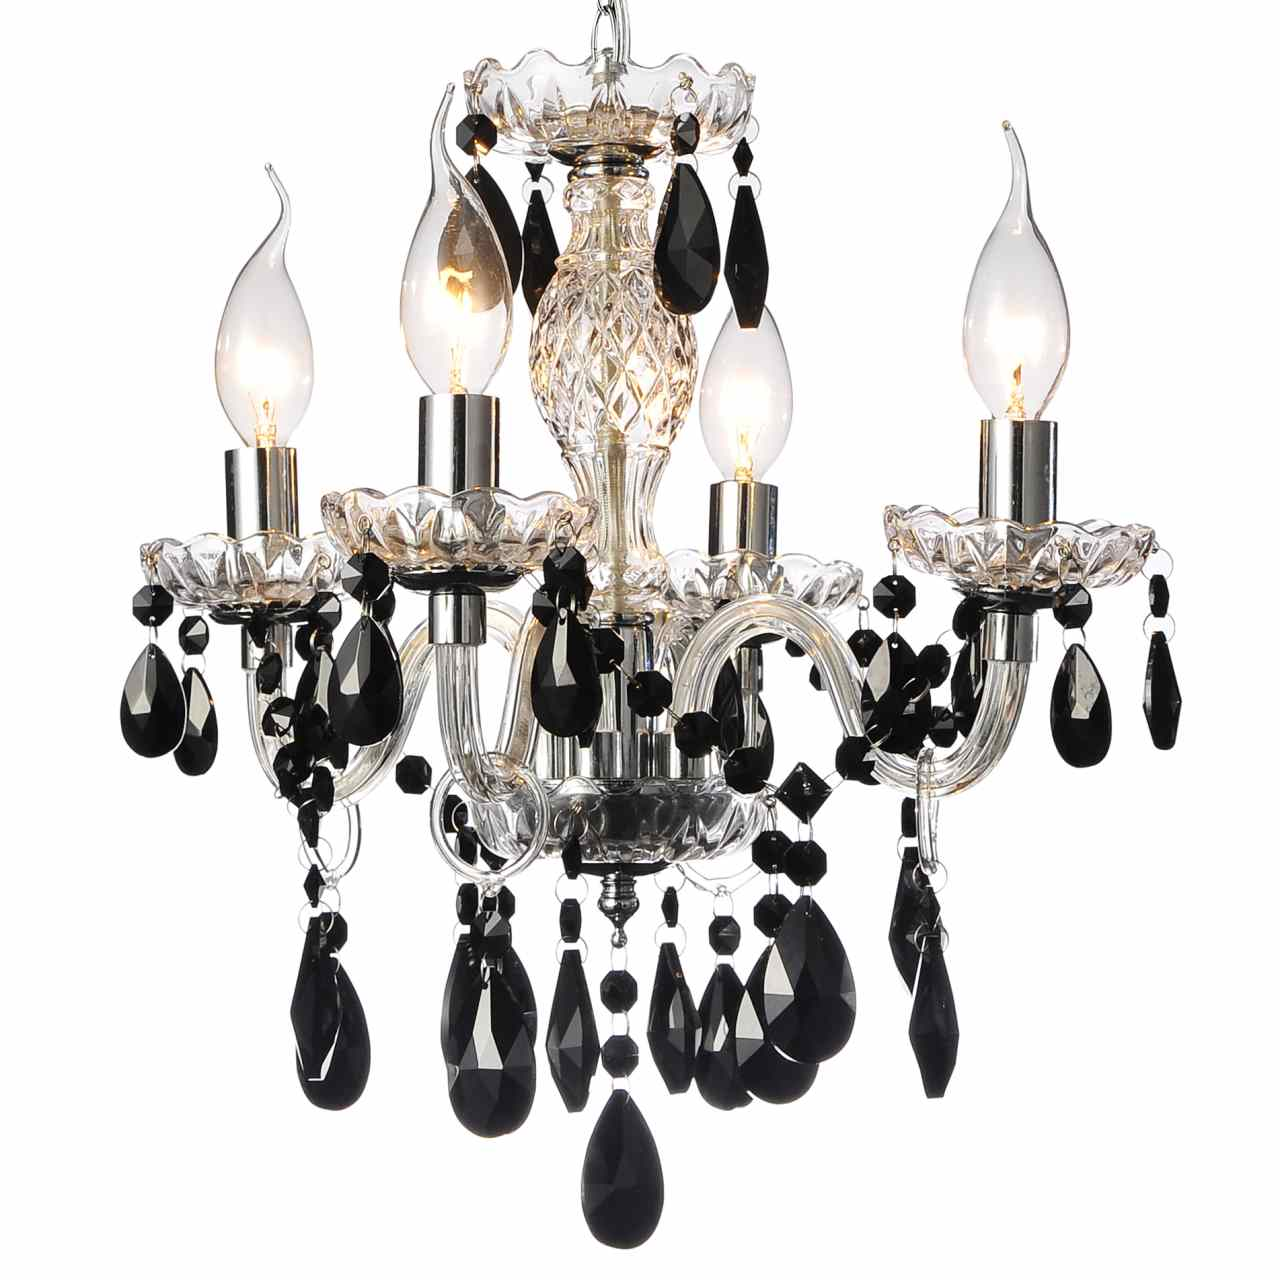 Brizzo lighting stores 14 victorian traditional crystal round mini picture of 14 victorian traditional crystal round mini chandelier polished chrome black crystals 4 lights aloadofball Images